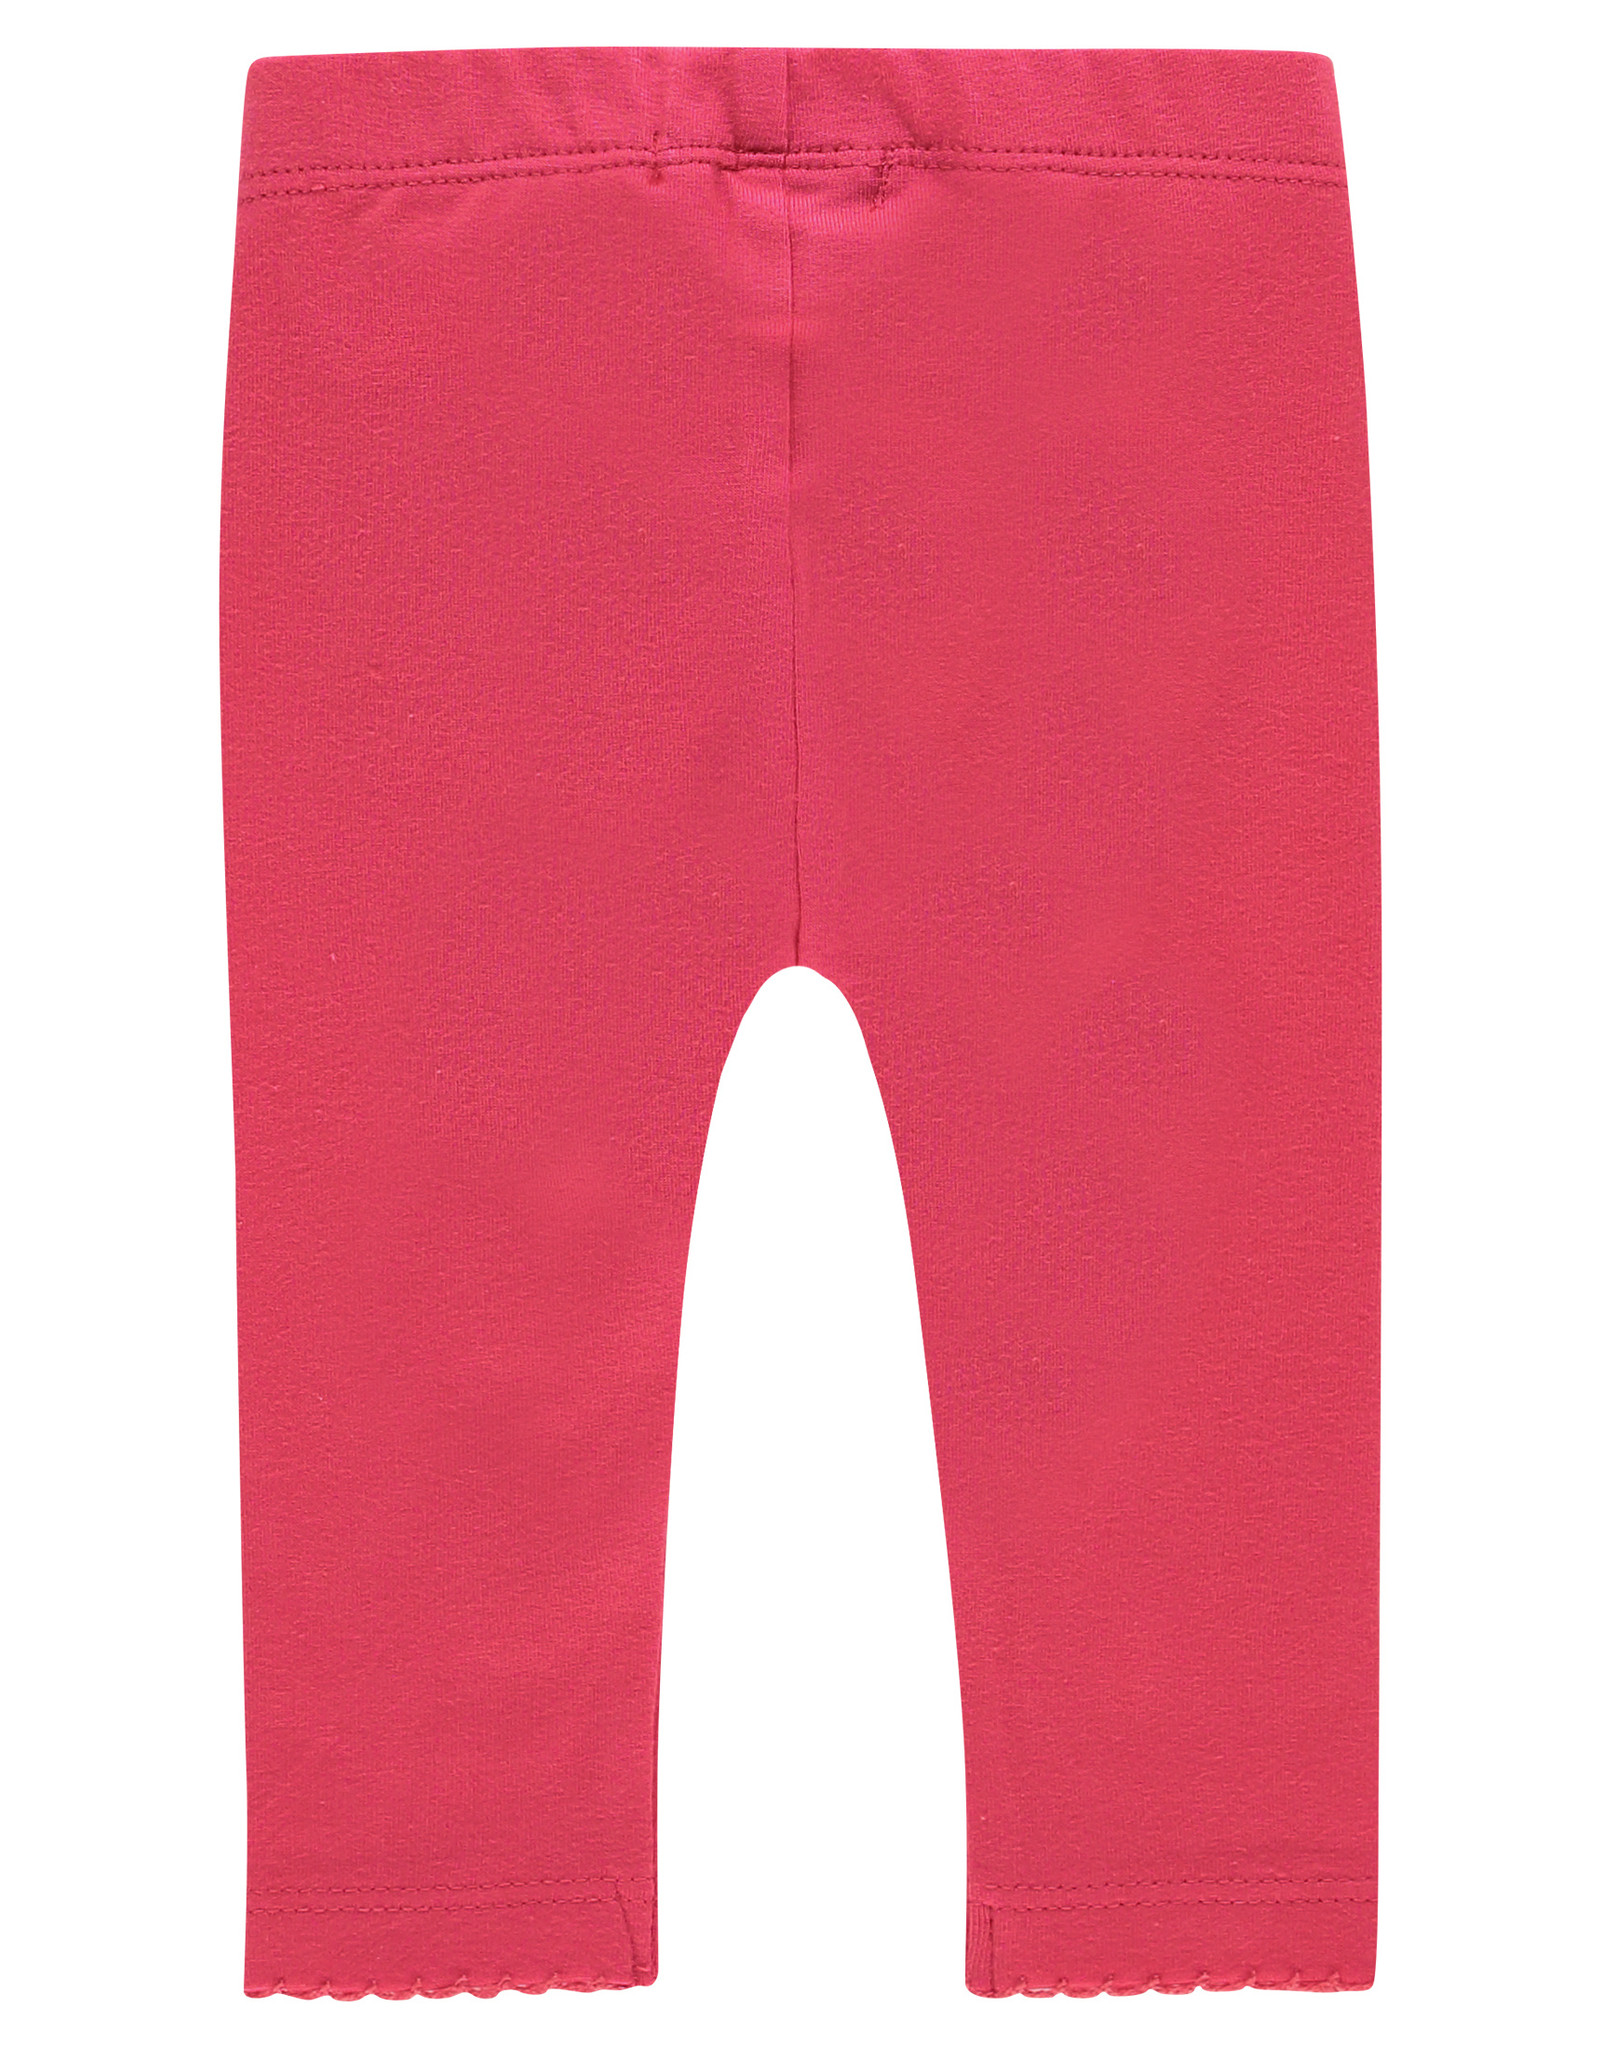 Noppies G Legging Chawfordsville, Rouge Red